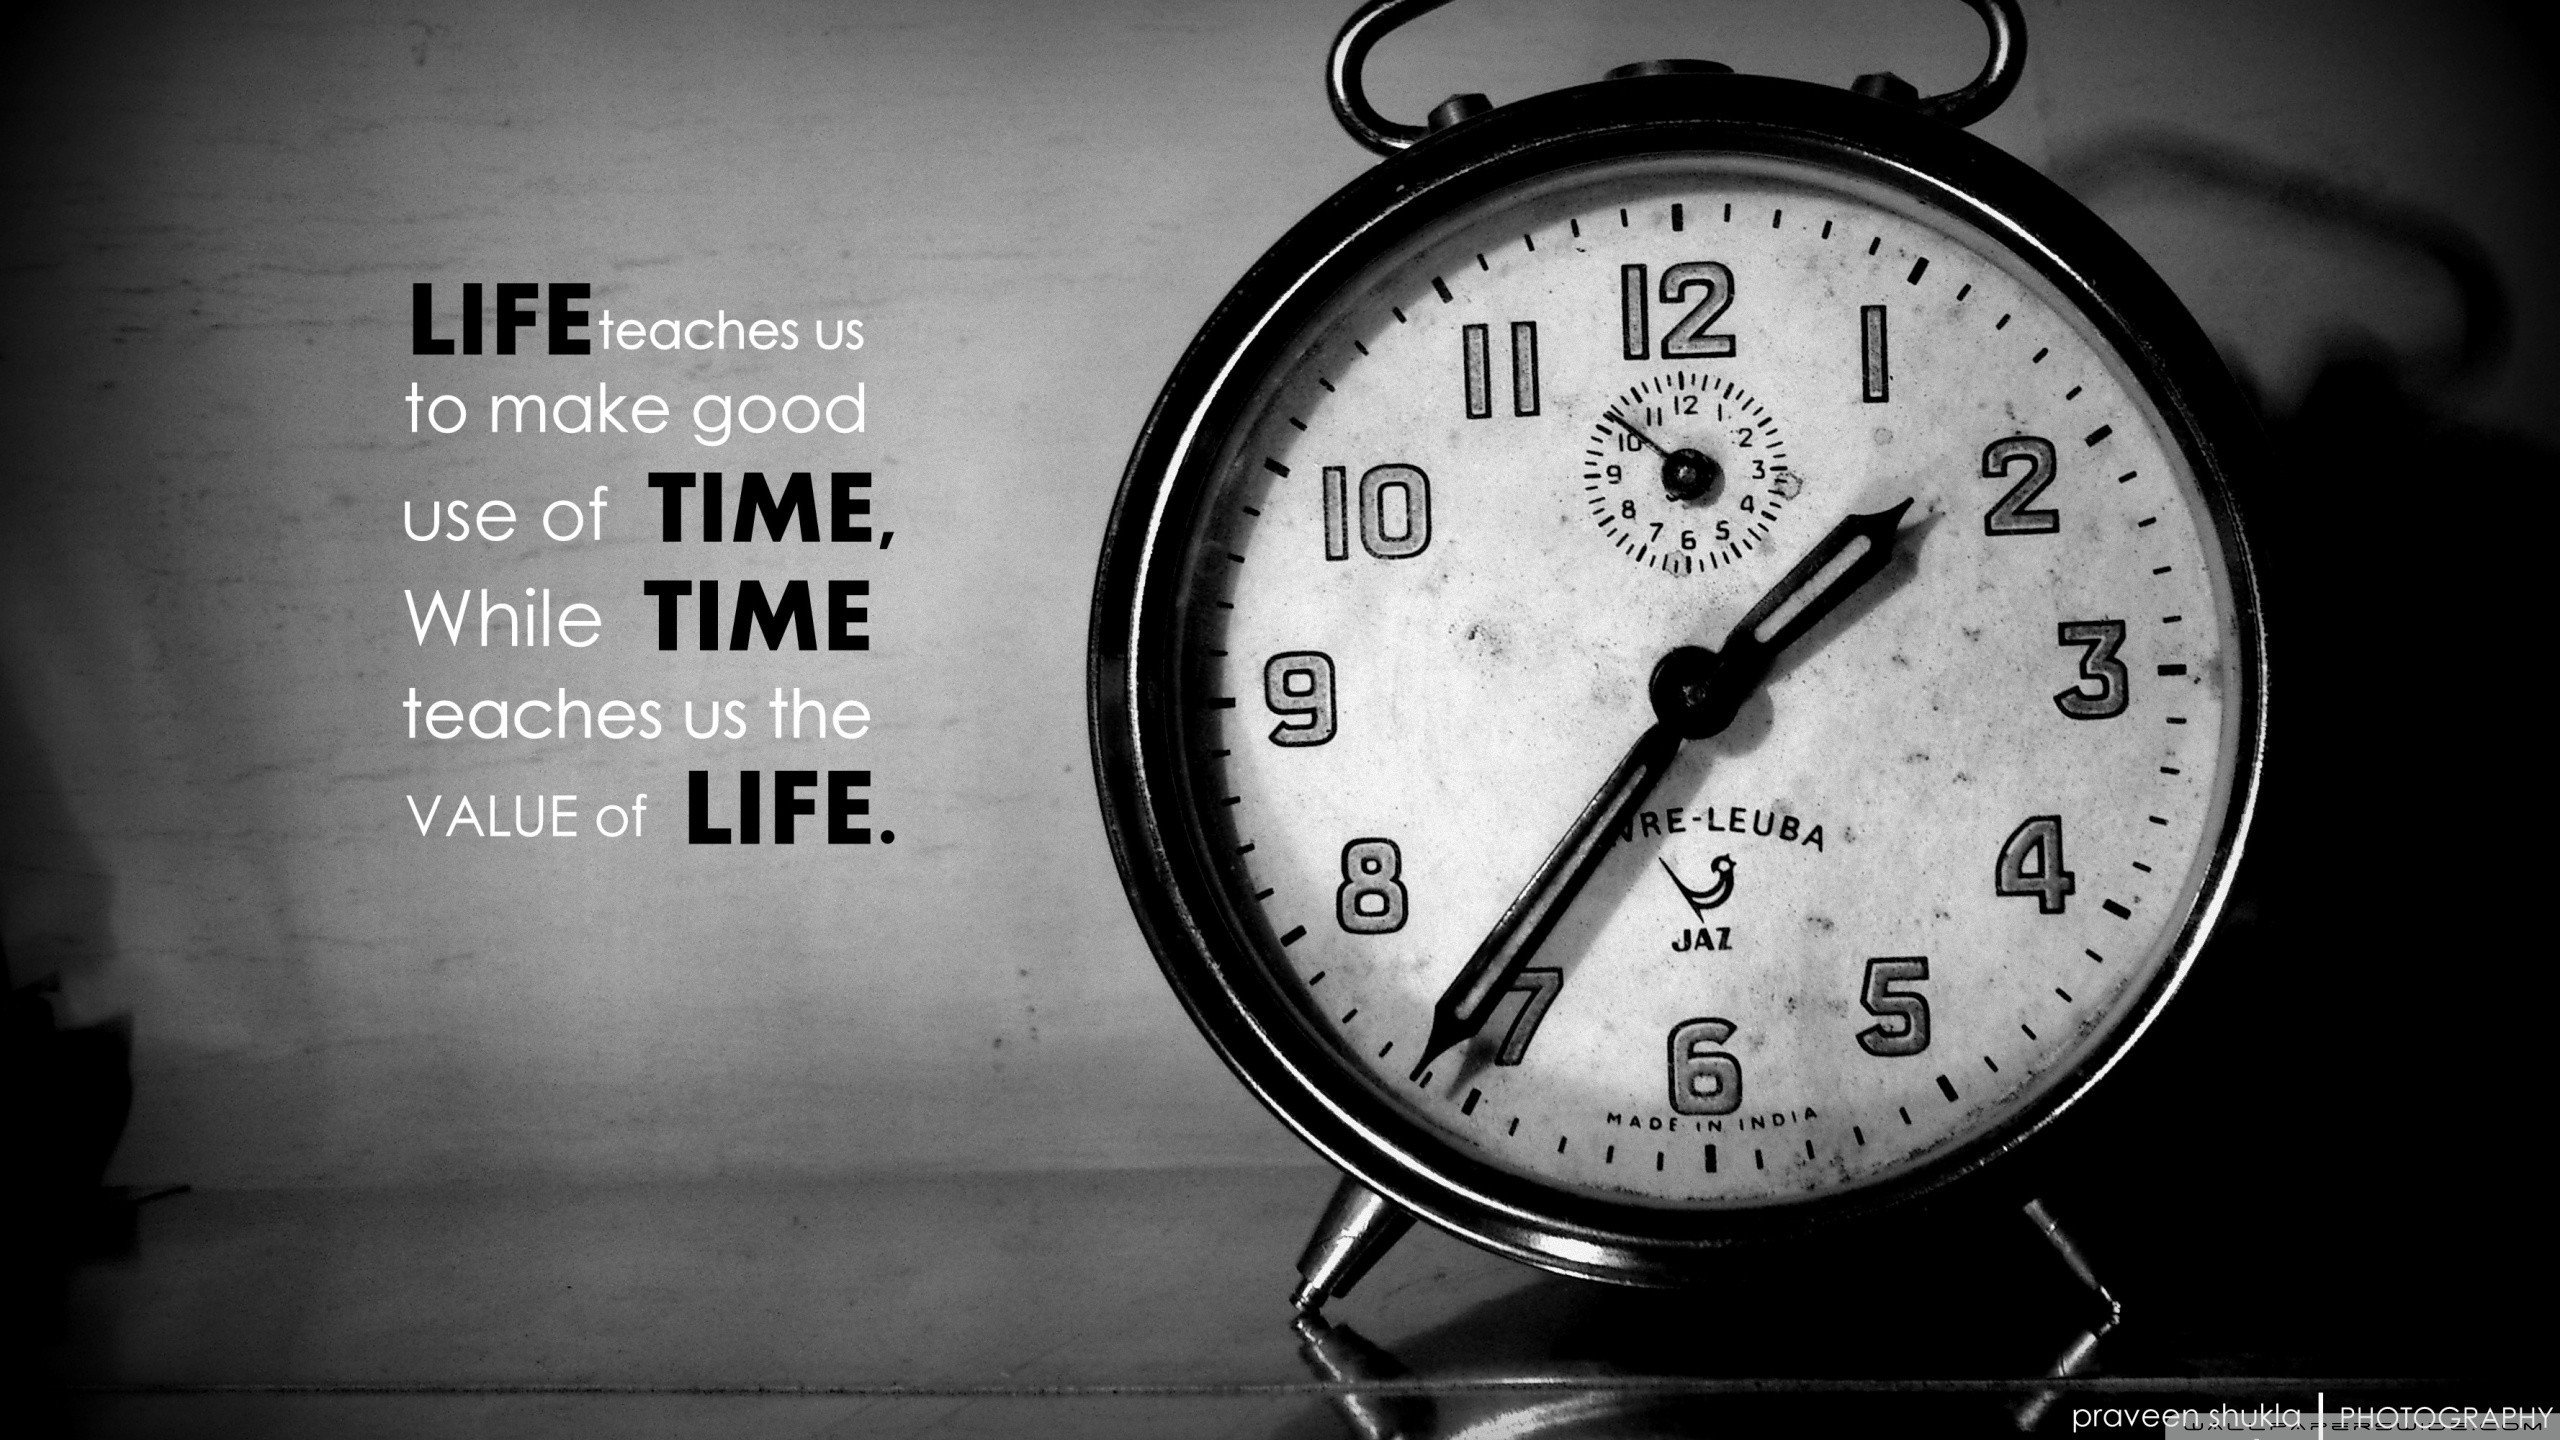 Clock wallpapers 73 background pictures 2560x1440 hd wallpaper background image id425677 altavistaventures Choice Image